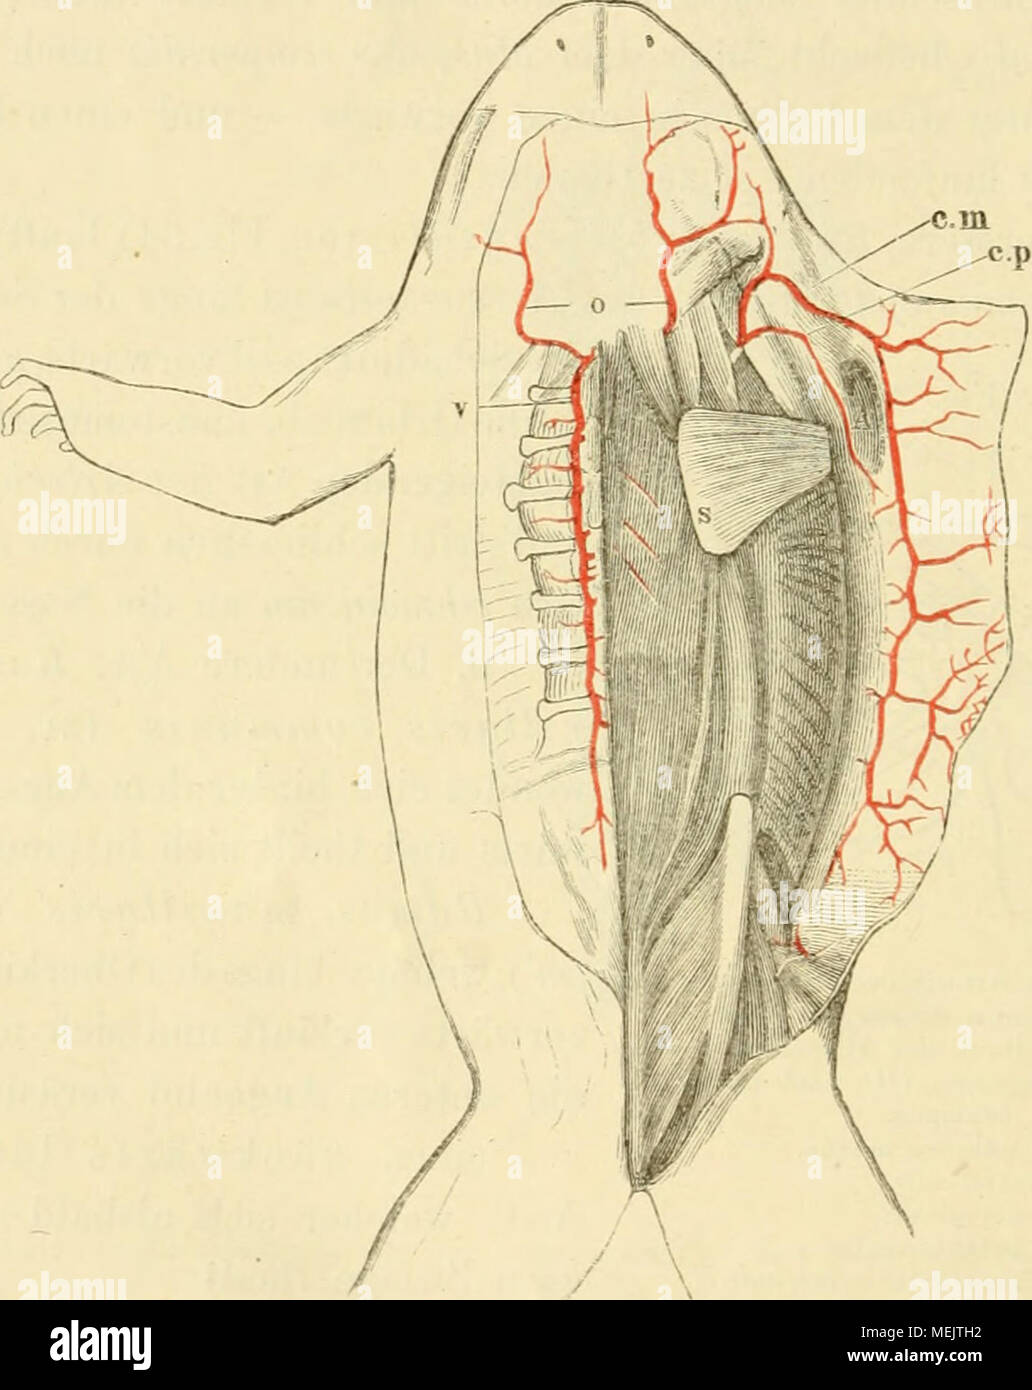 Tolle John Wiley And Sons Anatomie Und Physiologie Ideen ...